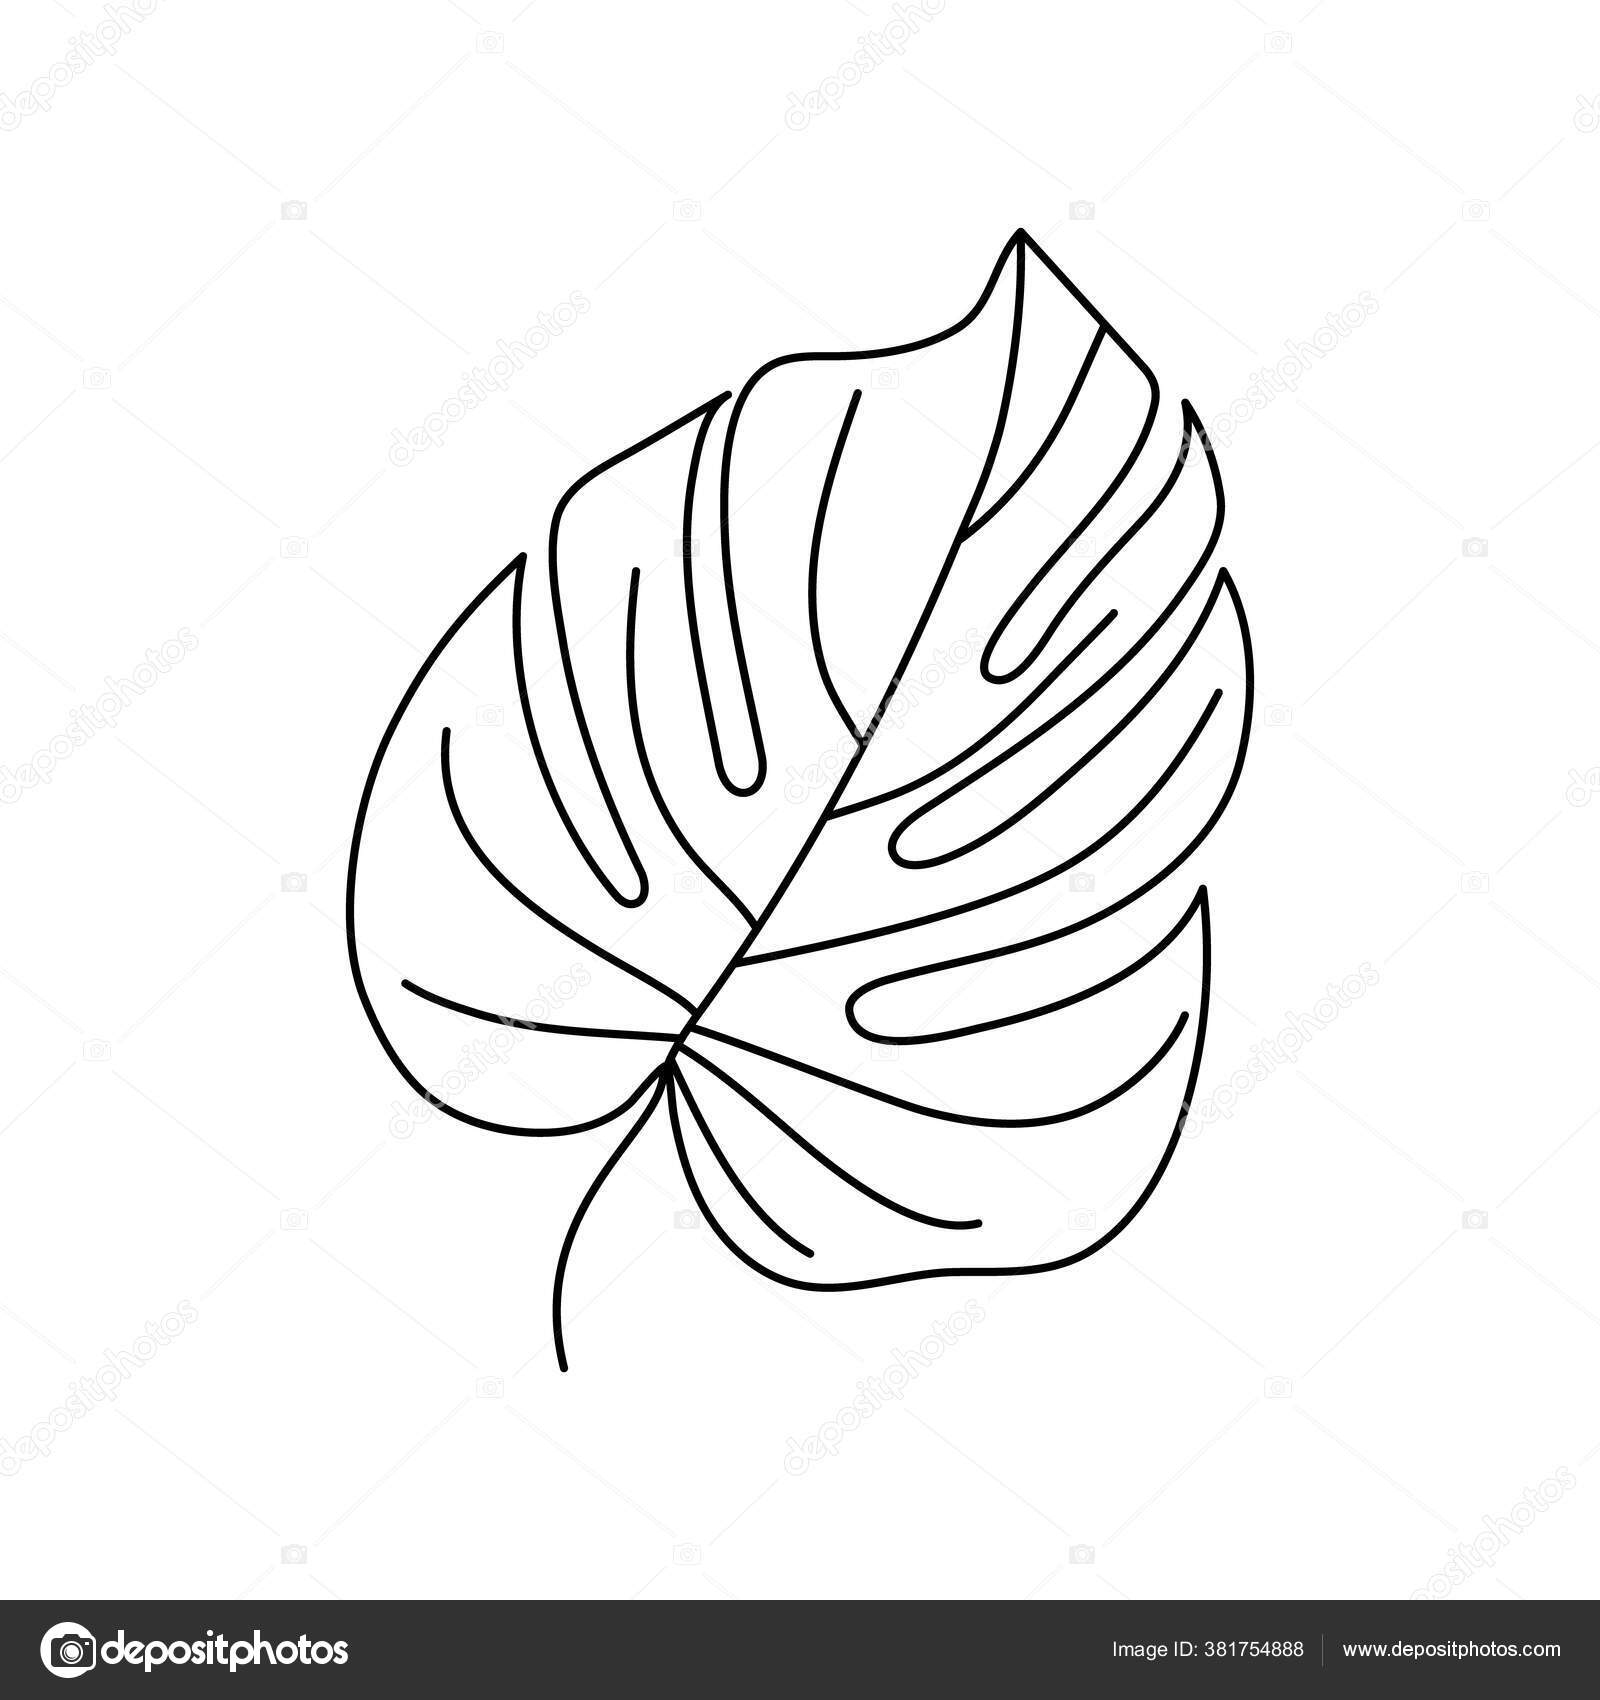 Monstera Leaf Of Tropical Plants Outline Palm Leaf In A Trendy Minimalist Liner Style Vector Illustration Stock Vector C Sini4ka 381754888 Vector leaf, outline drawing in vintage style. https depositphotos com 381754888 stock illustration monstera leaf of tropical plants html